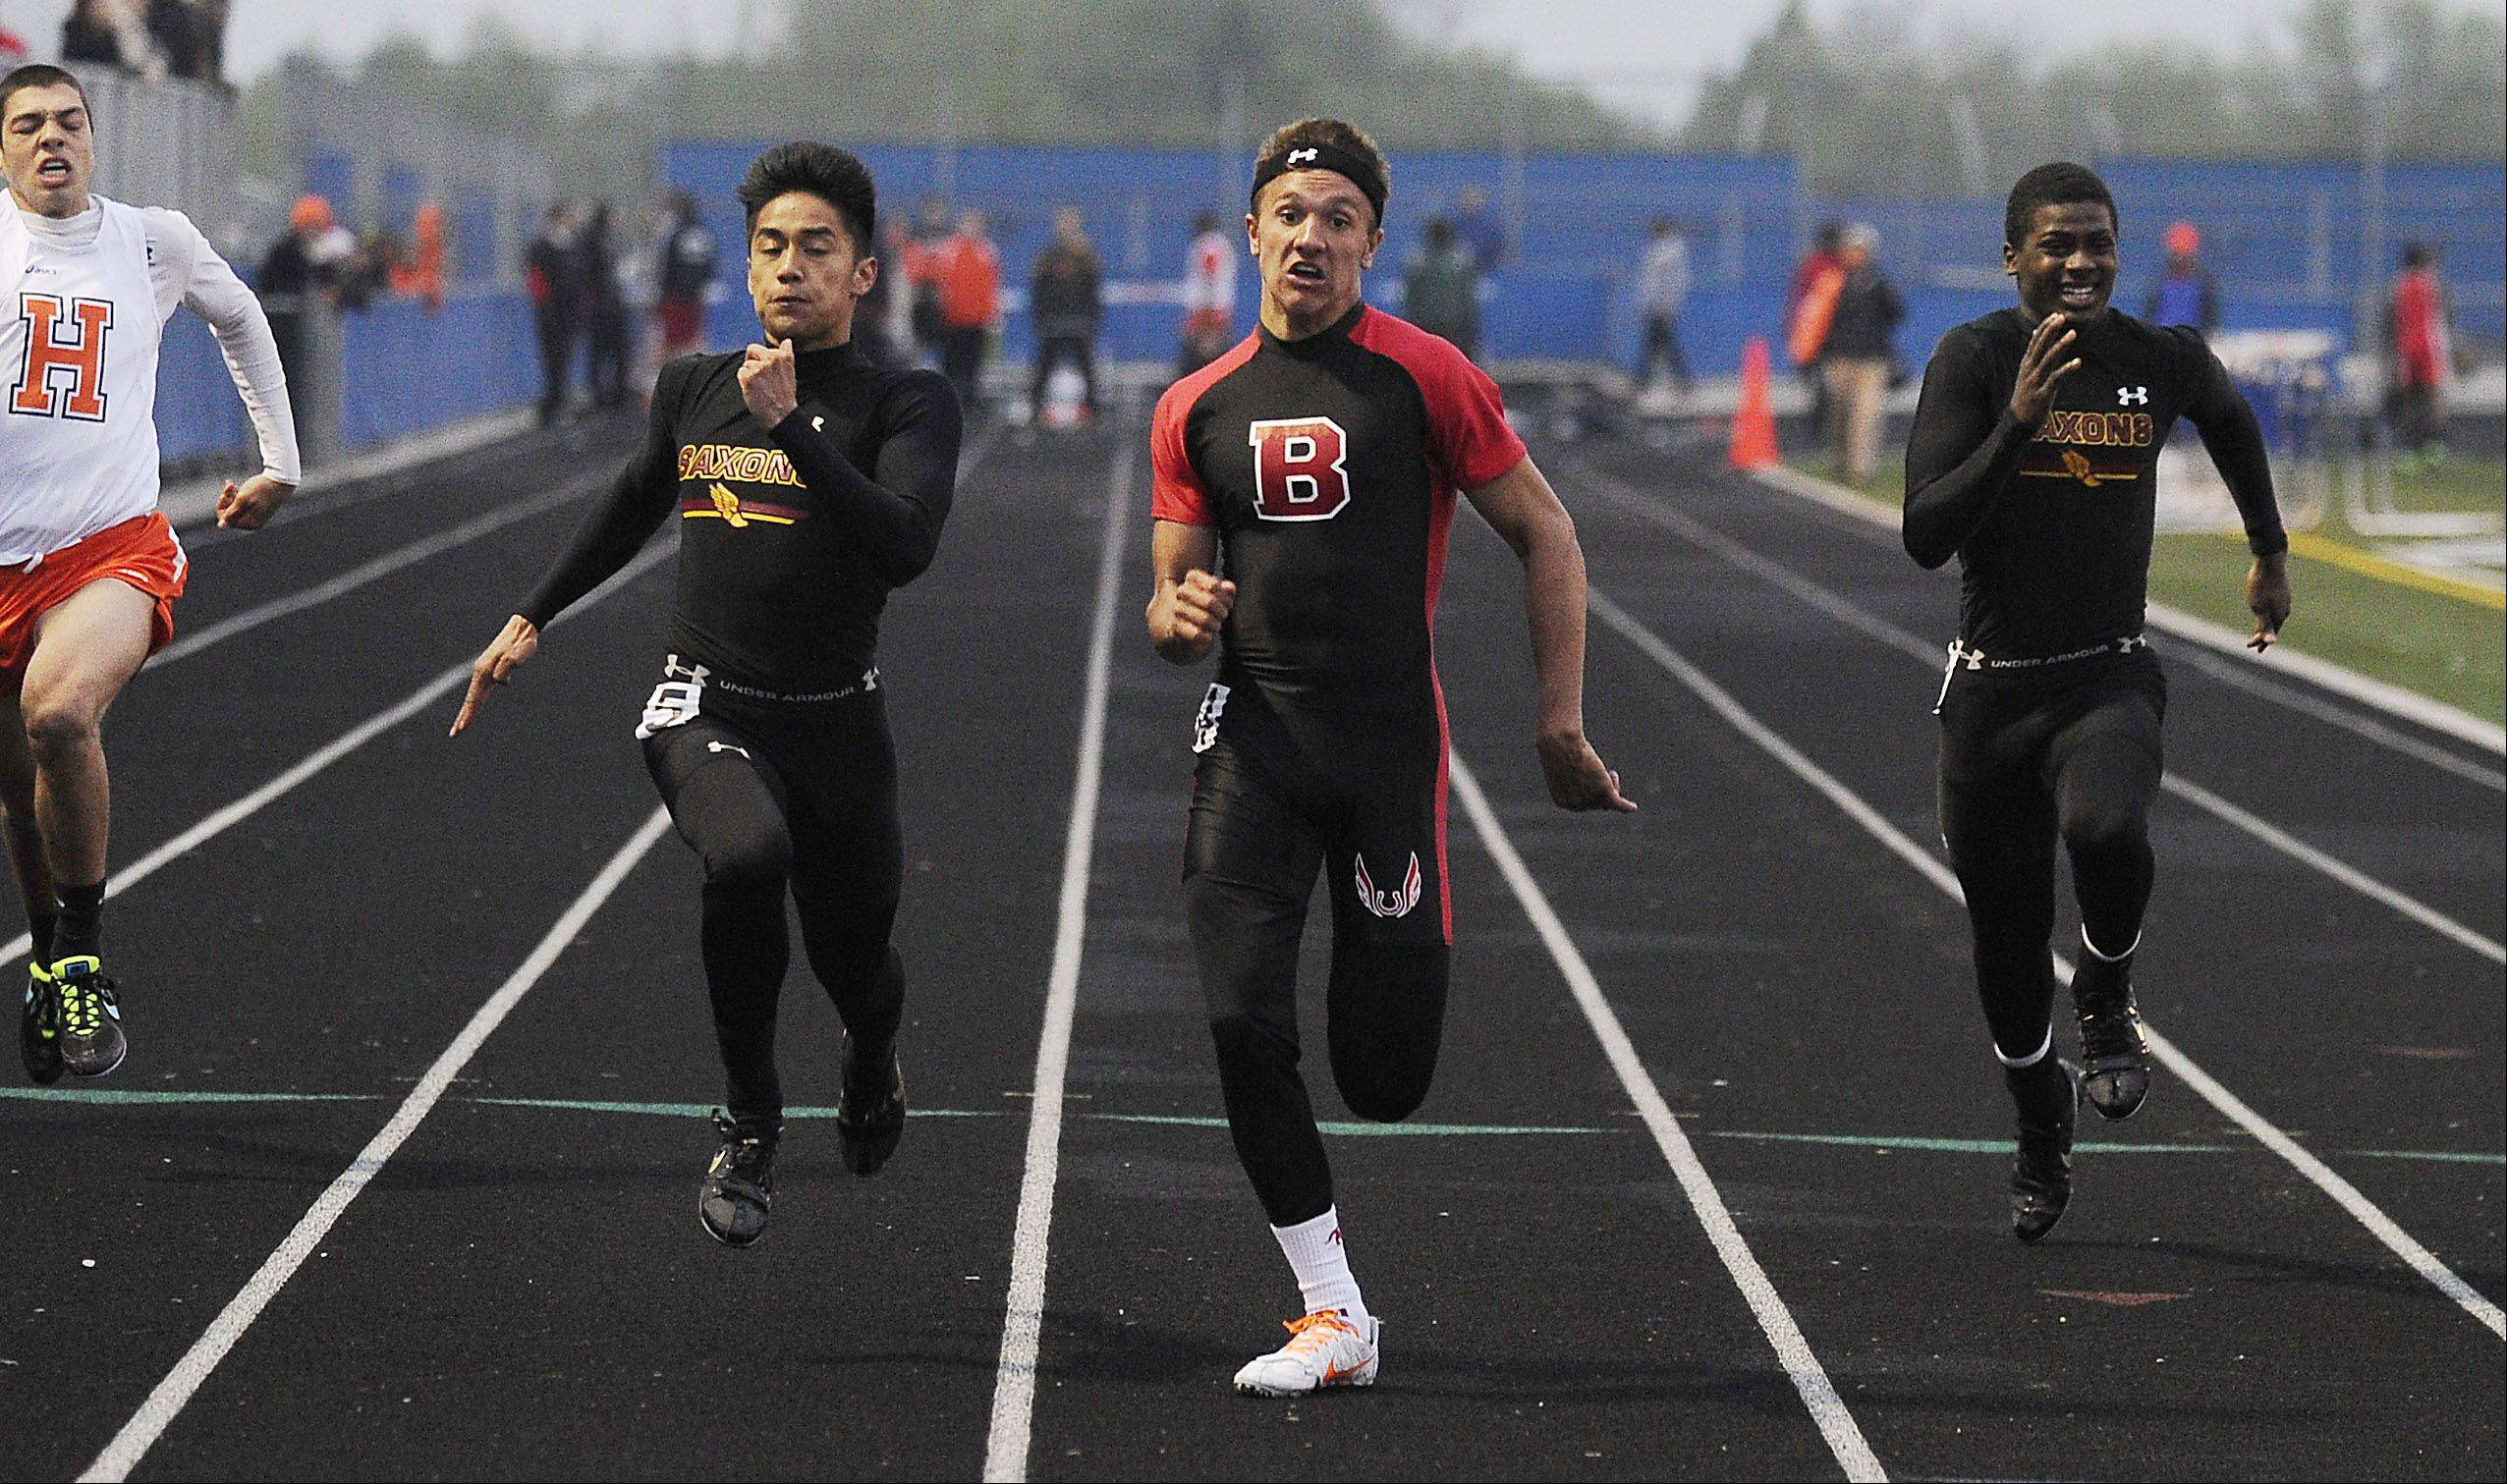 Scott Miller wins the 100-meter dash in the Mid-Suburban League meet at Hoffman Estates on Friday.